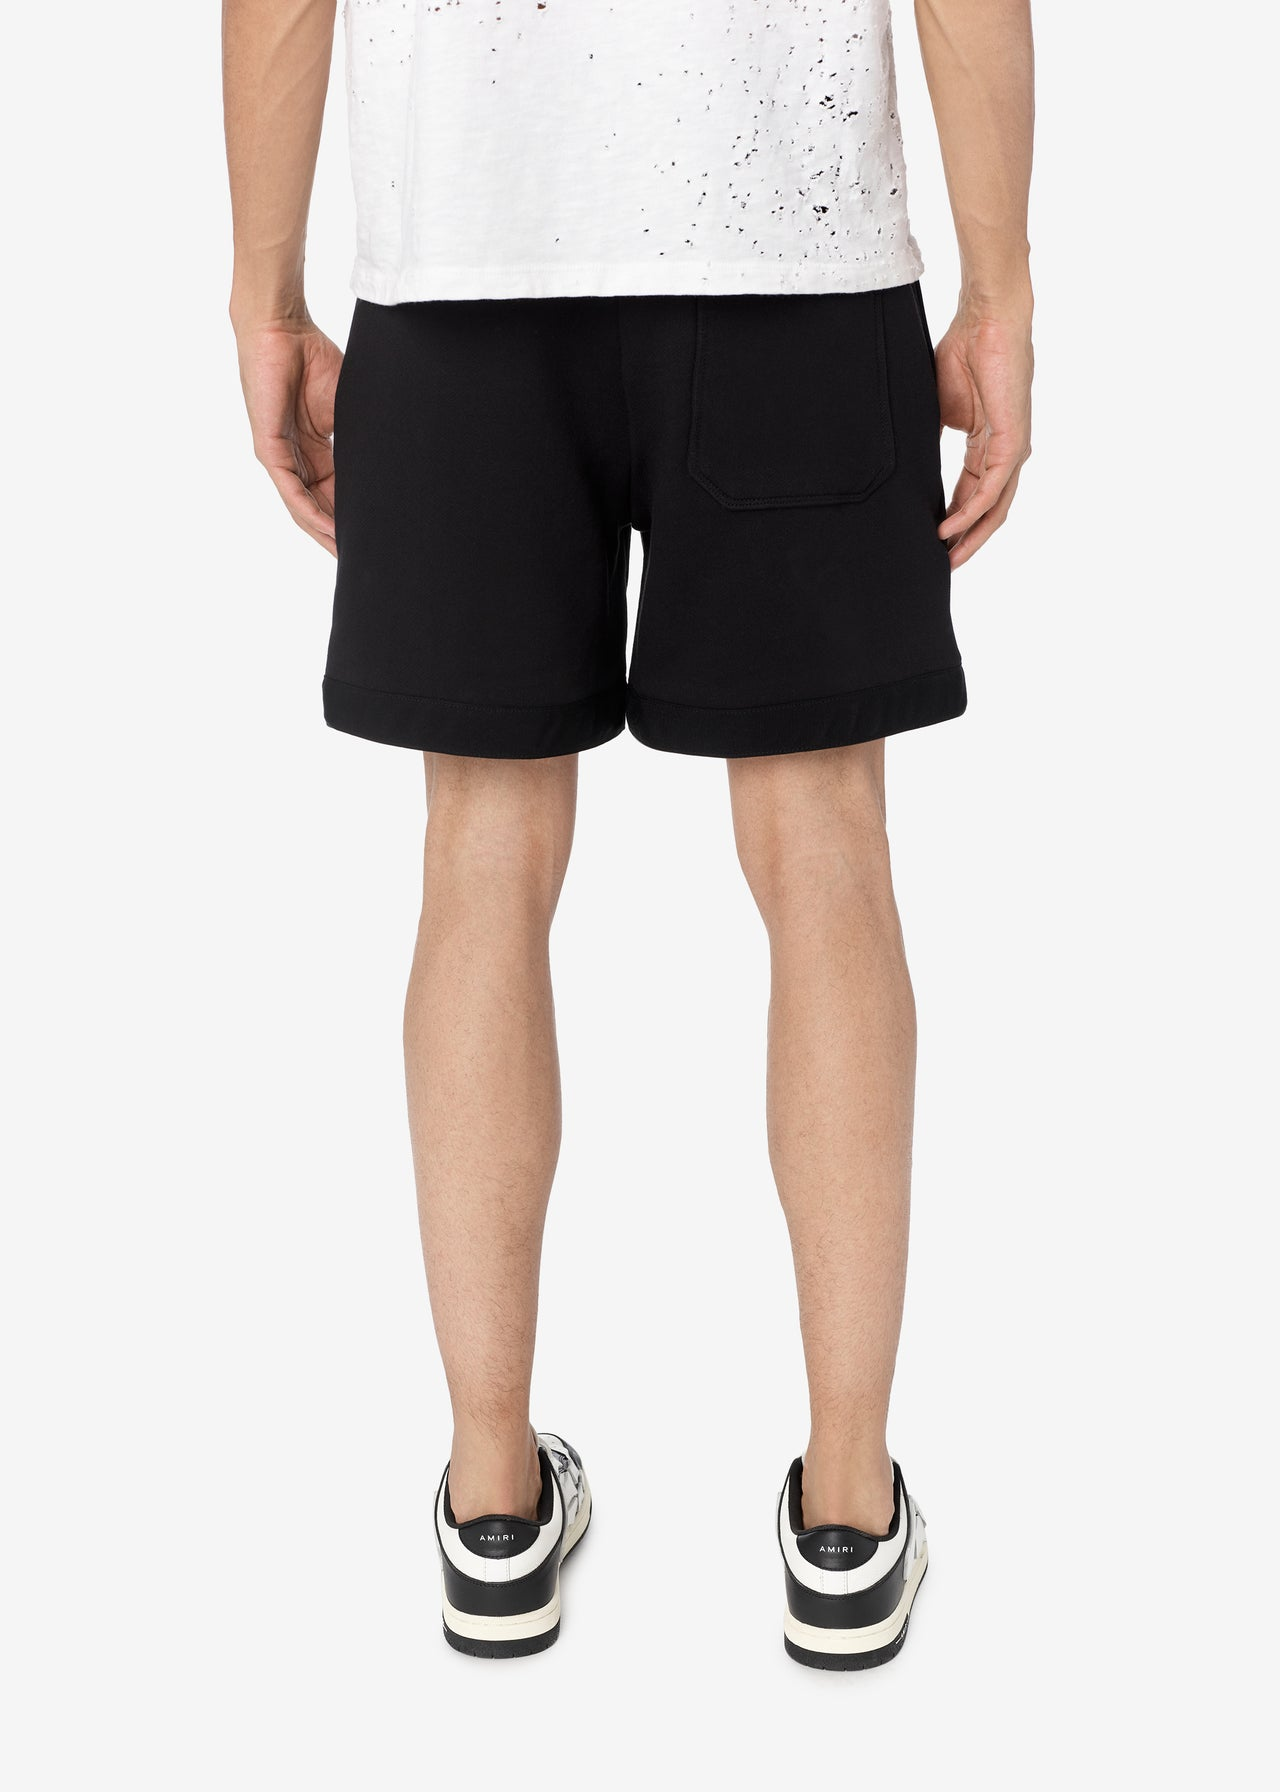 AMIRI CORE LOGO SWEATSHORTS - BLACK